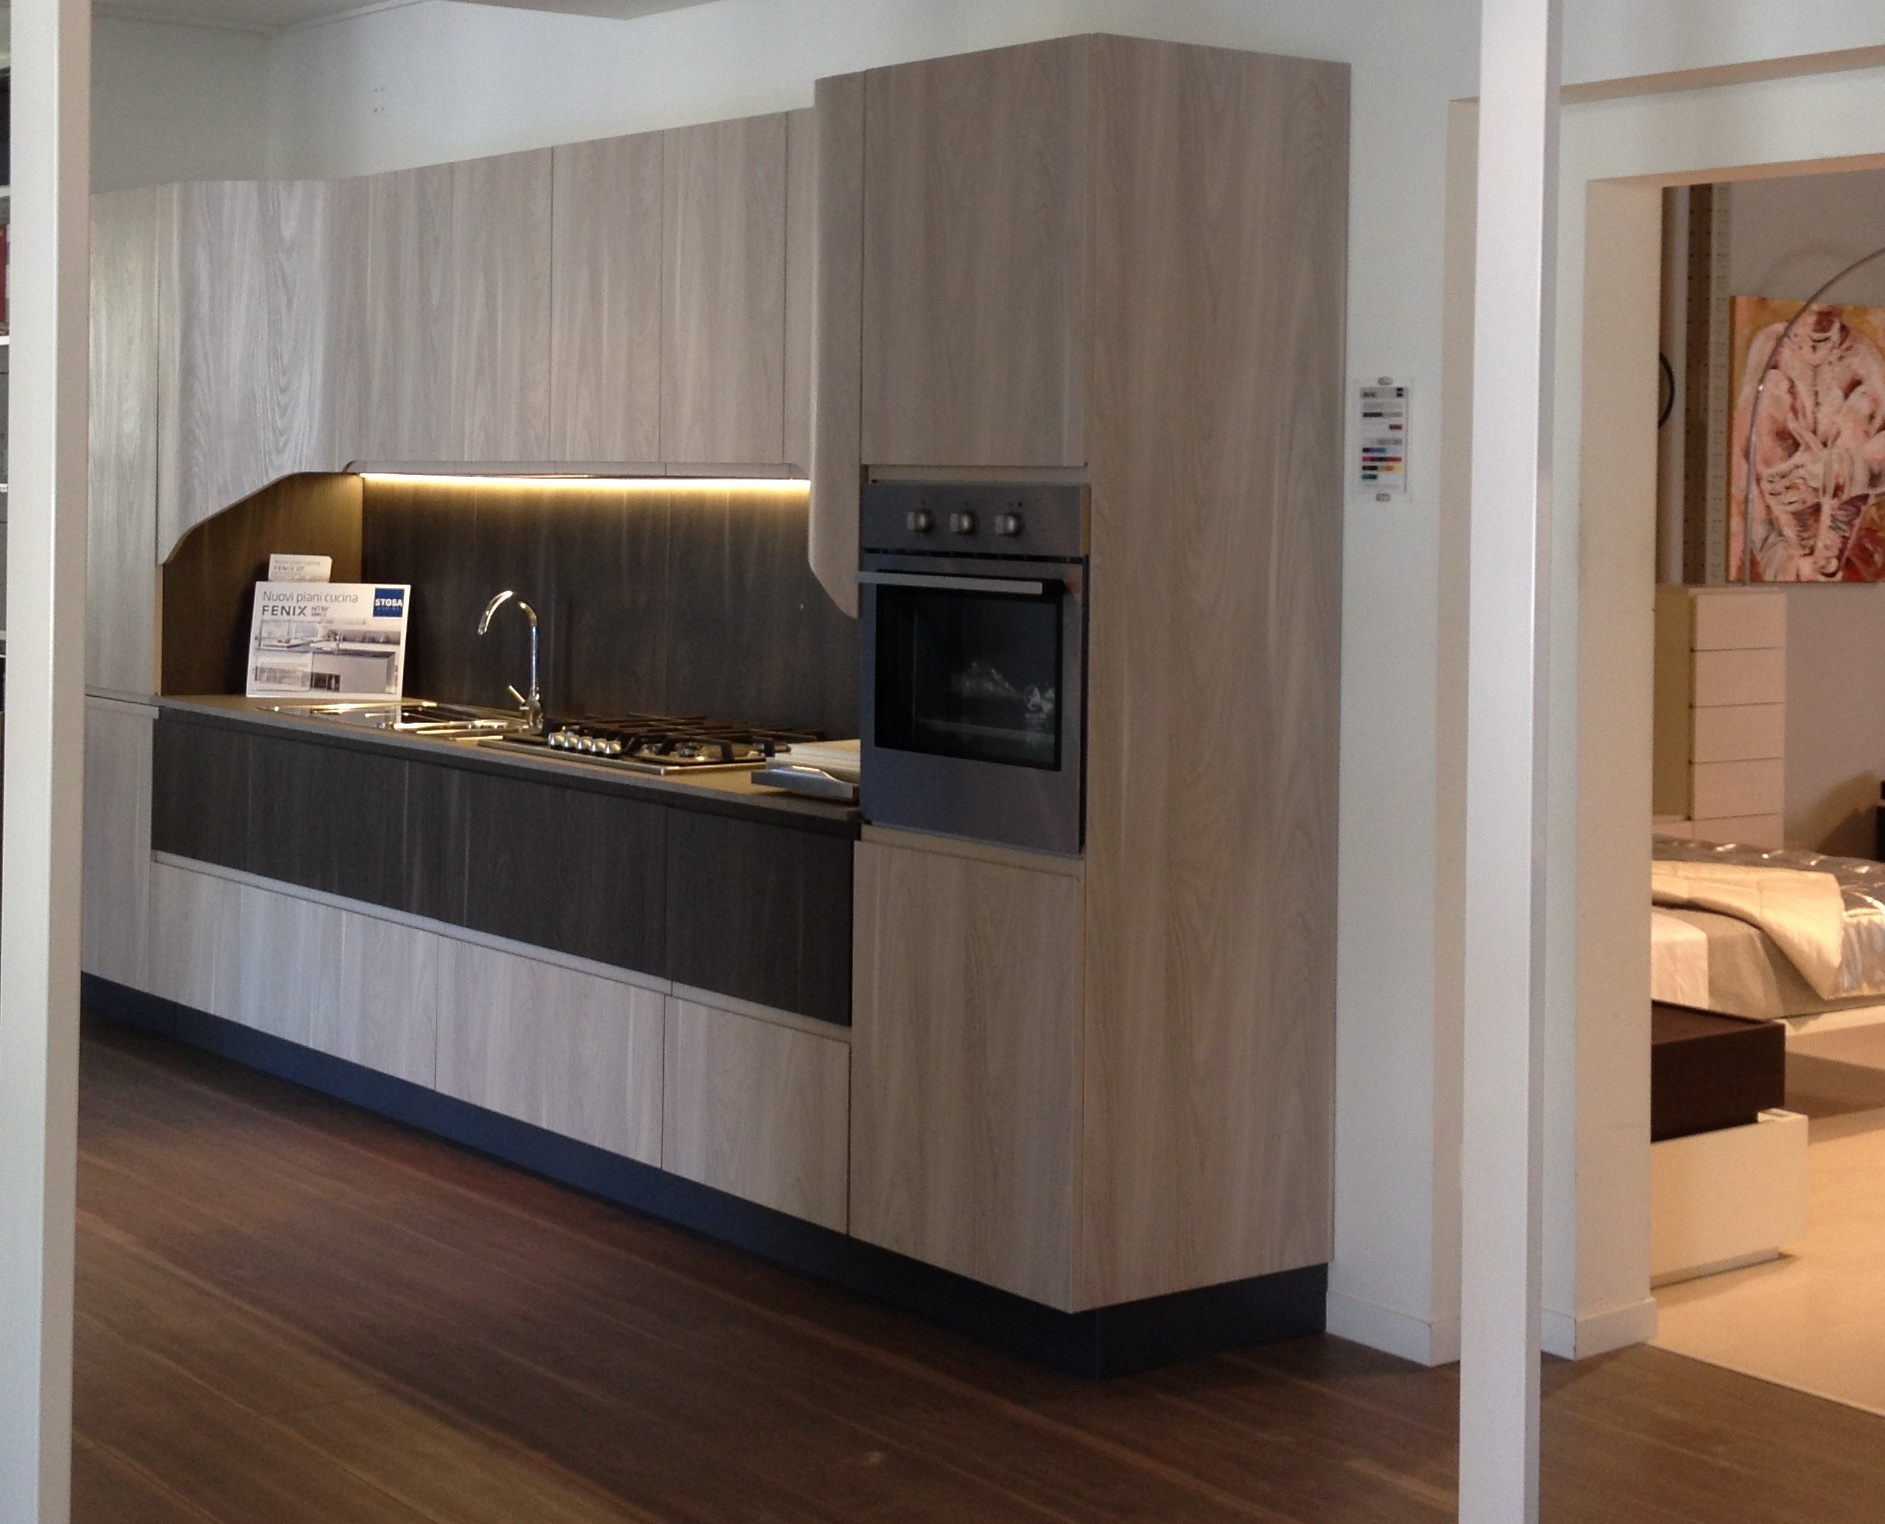 Awesome Stosa Cucine Bring Contemporary - ubiquitousforeigner.us ...